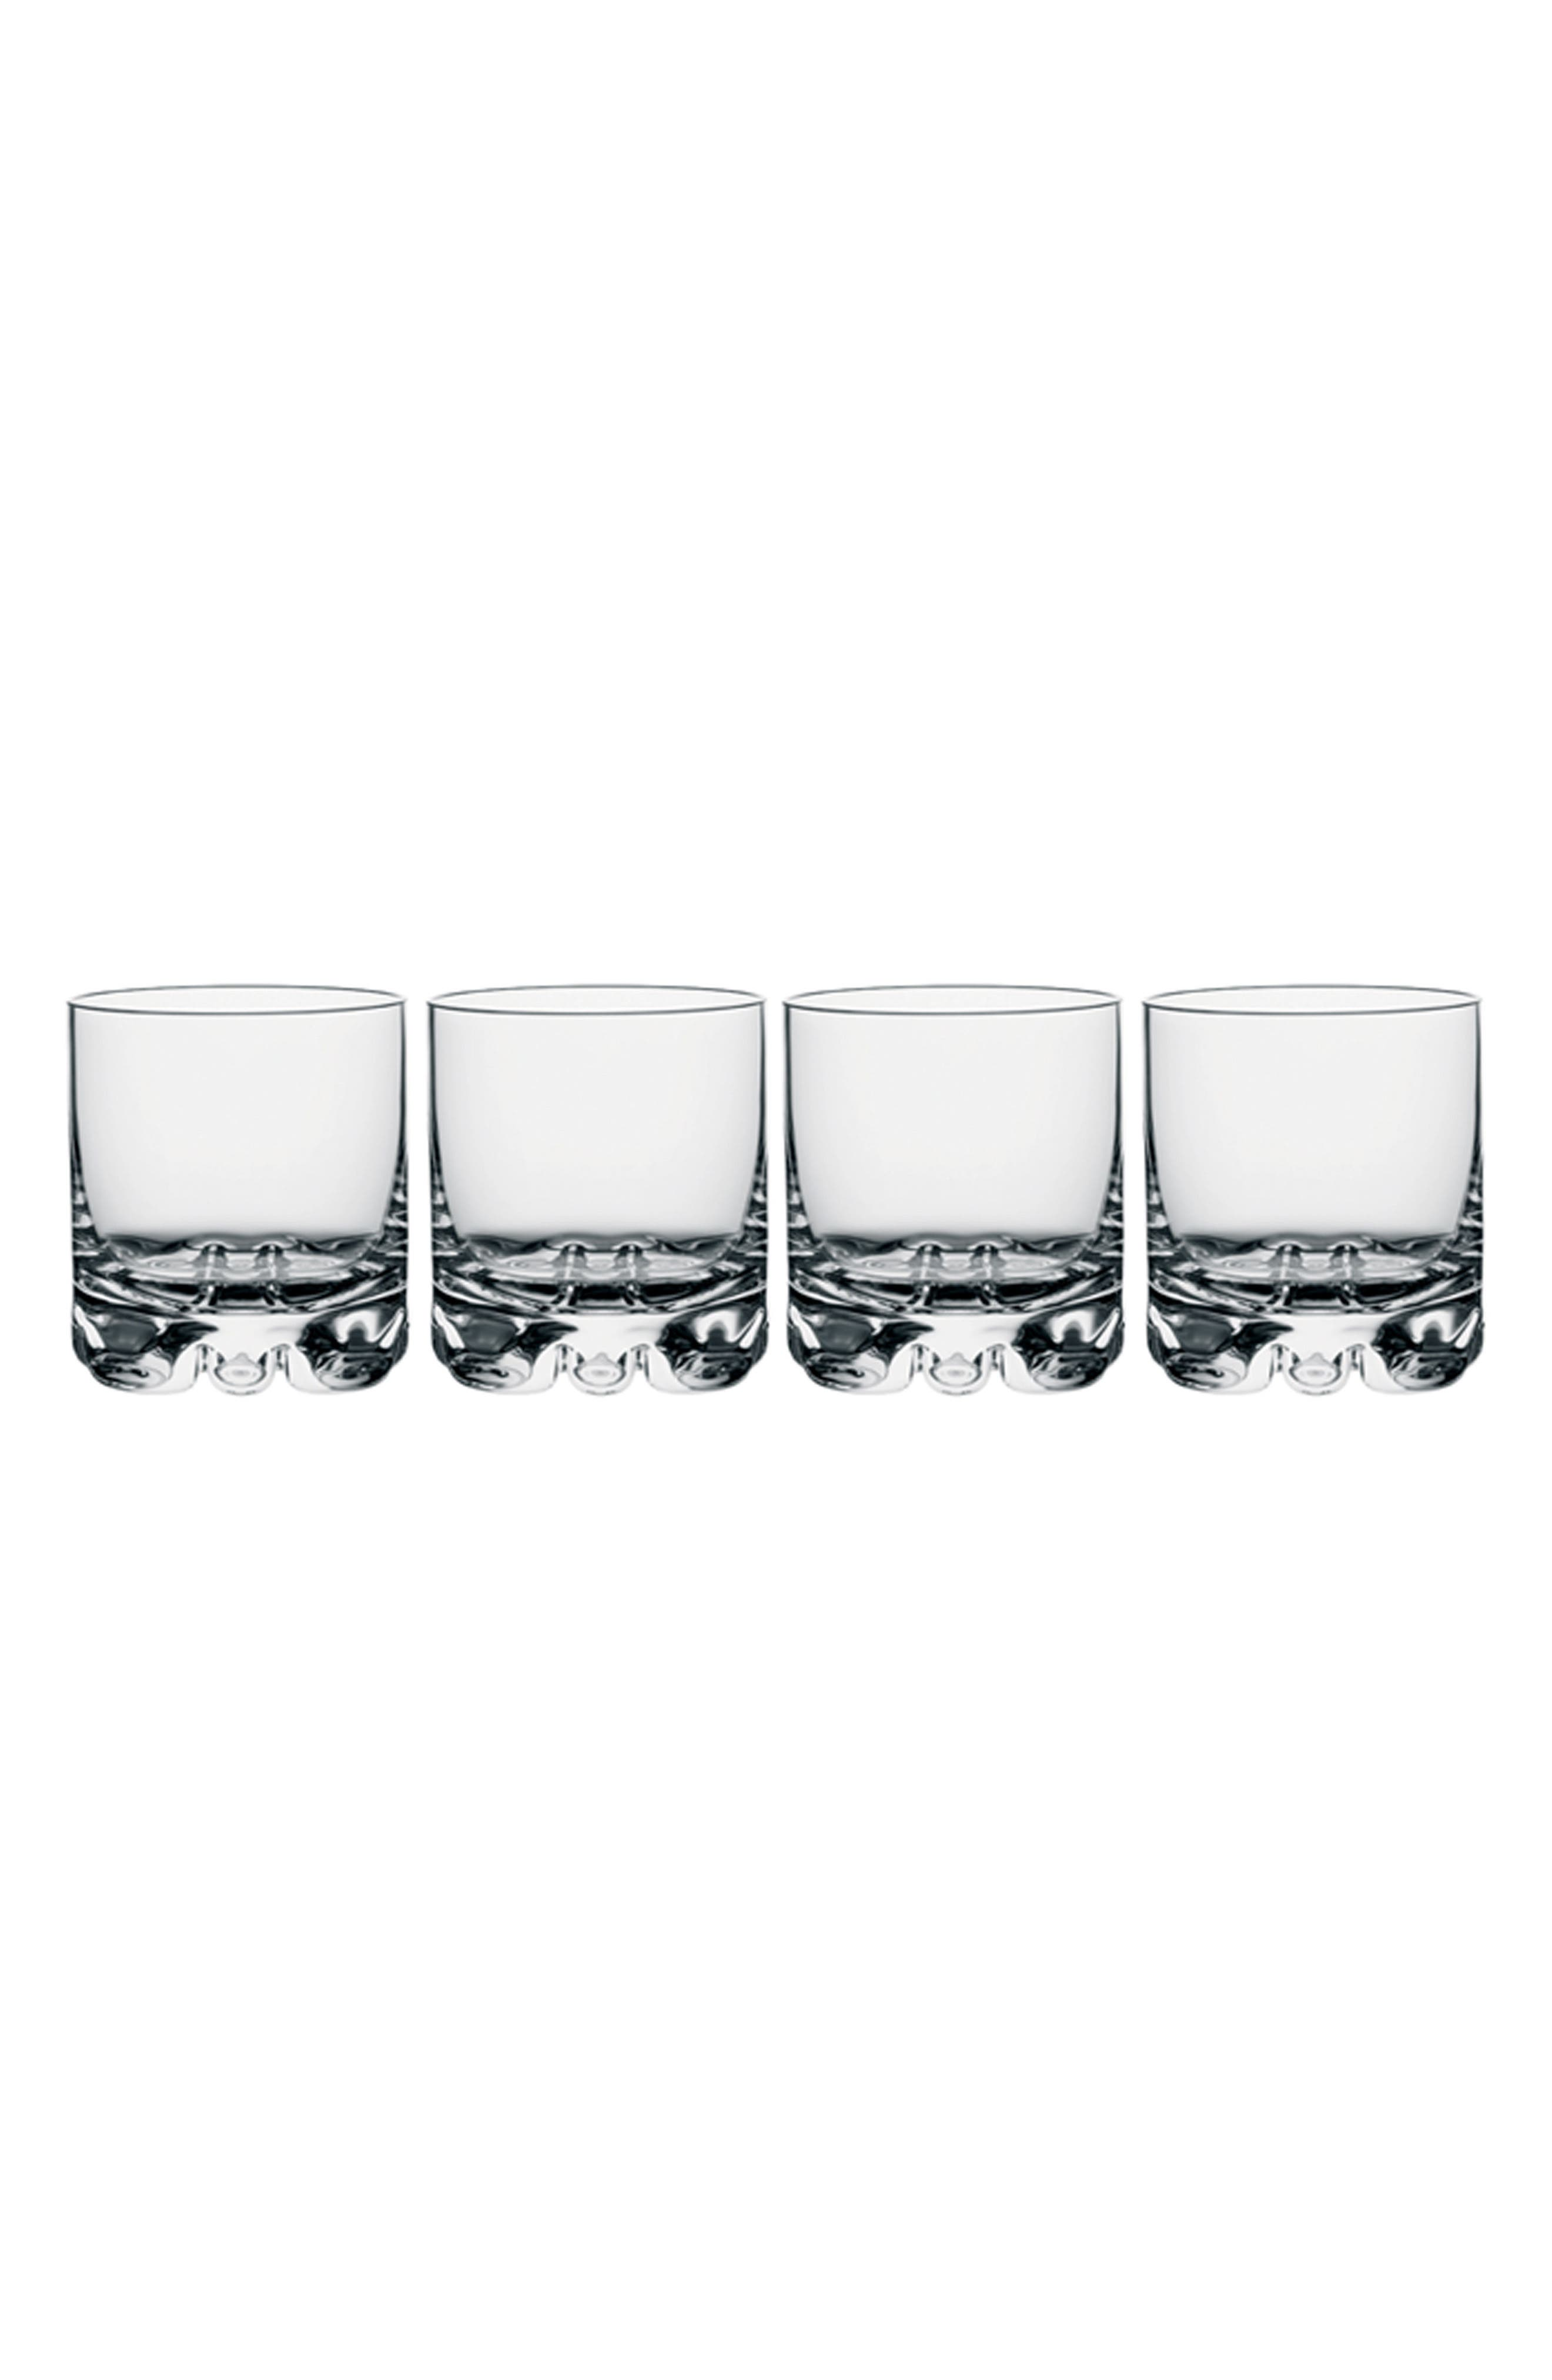 Erik Set of 4 Double Old Fashioned Glasses,                         Main,                         color, 100